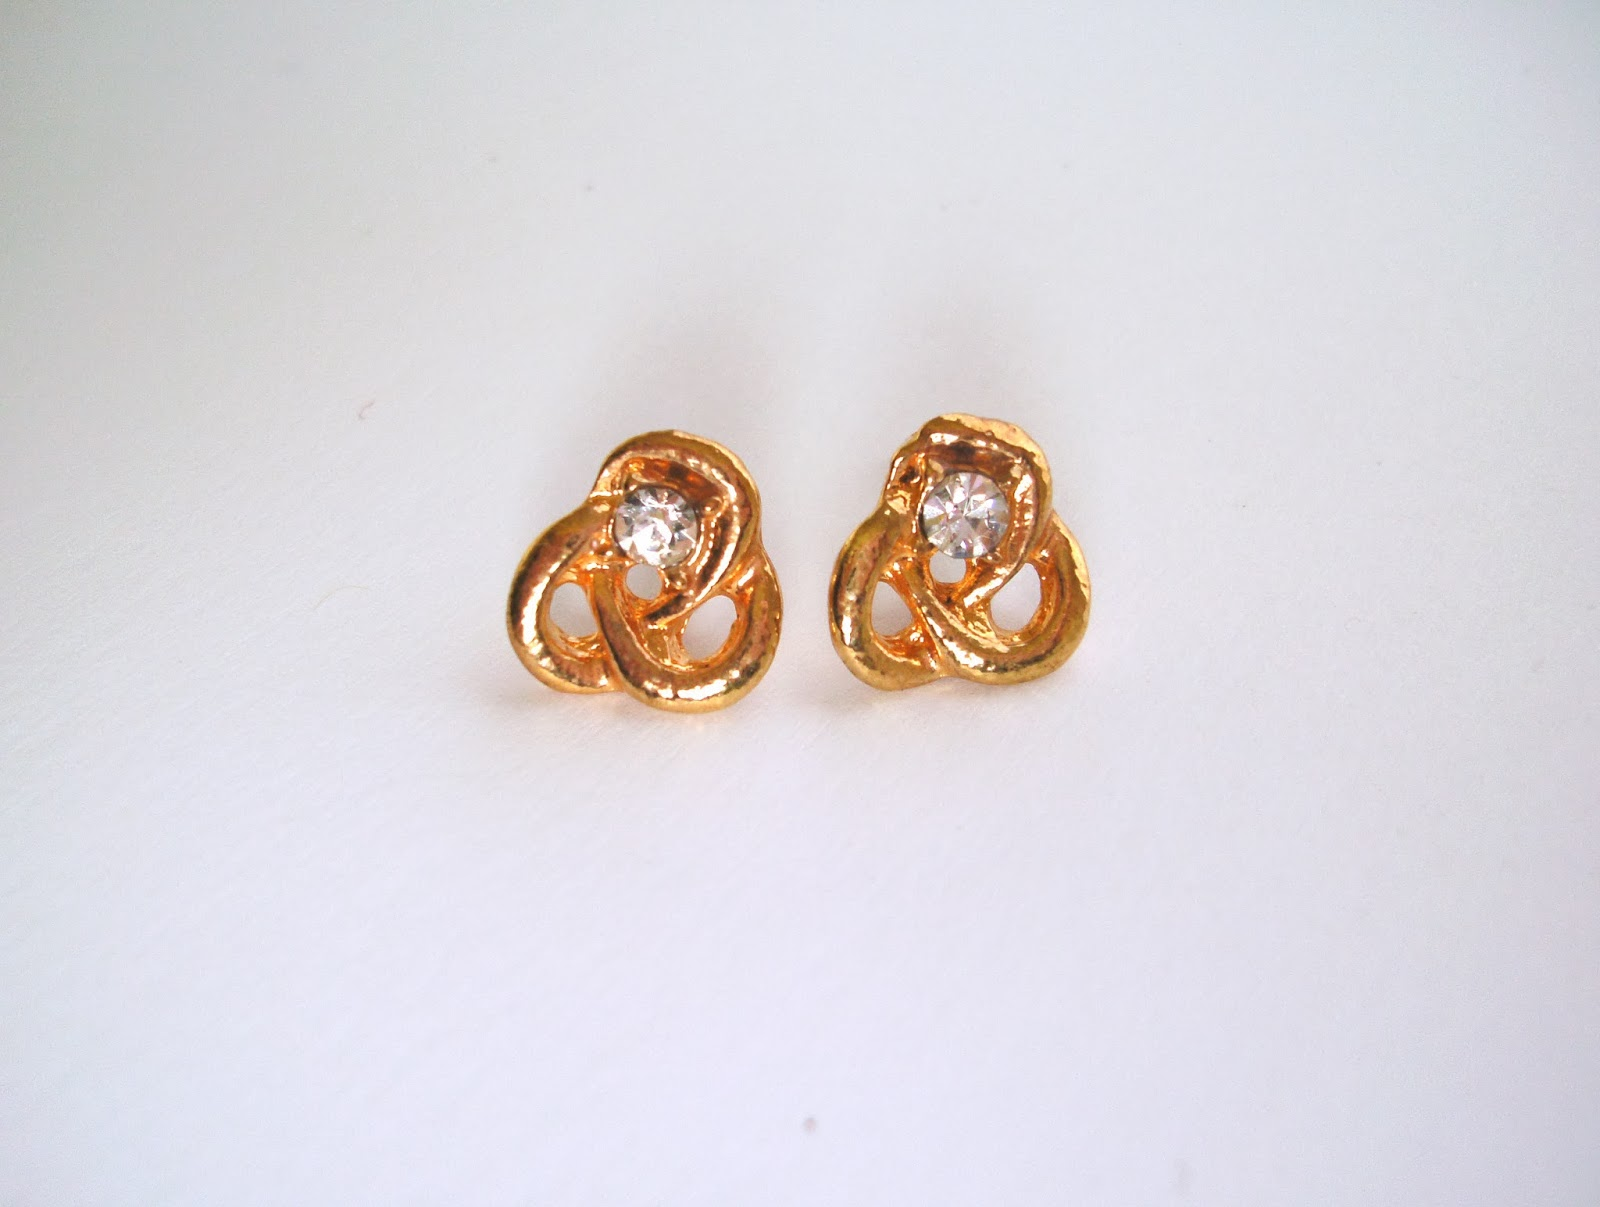 Corean Hot Sale Grace and Exquisite Style Hollow Pattern Earrings